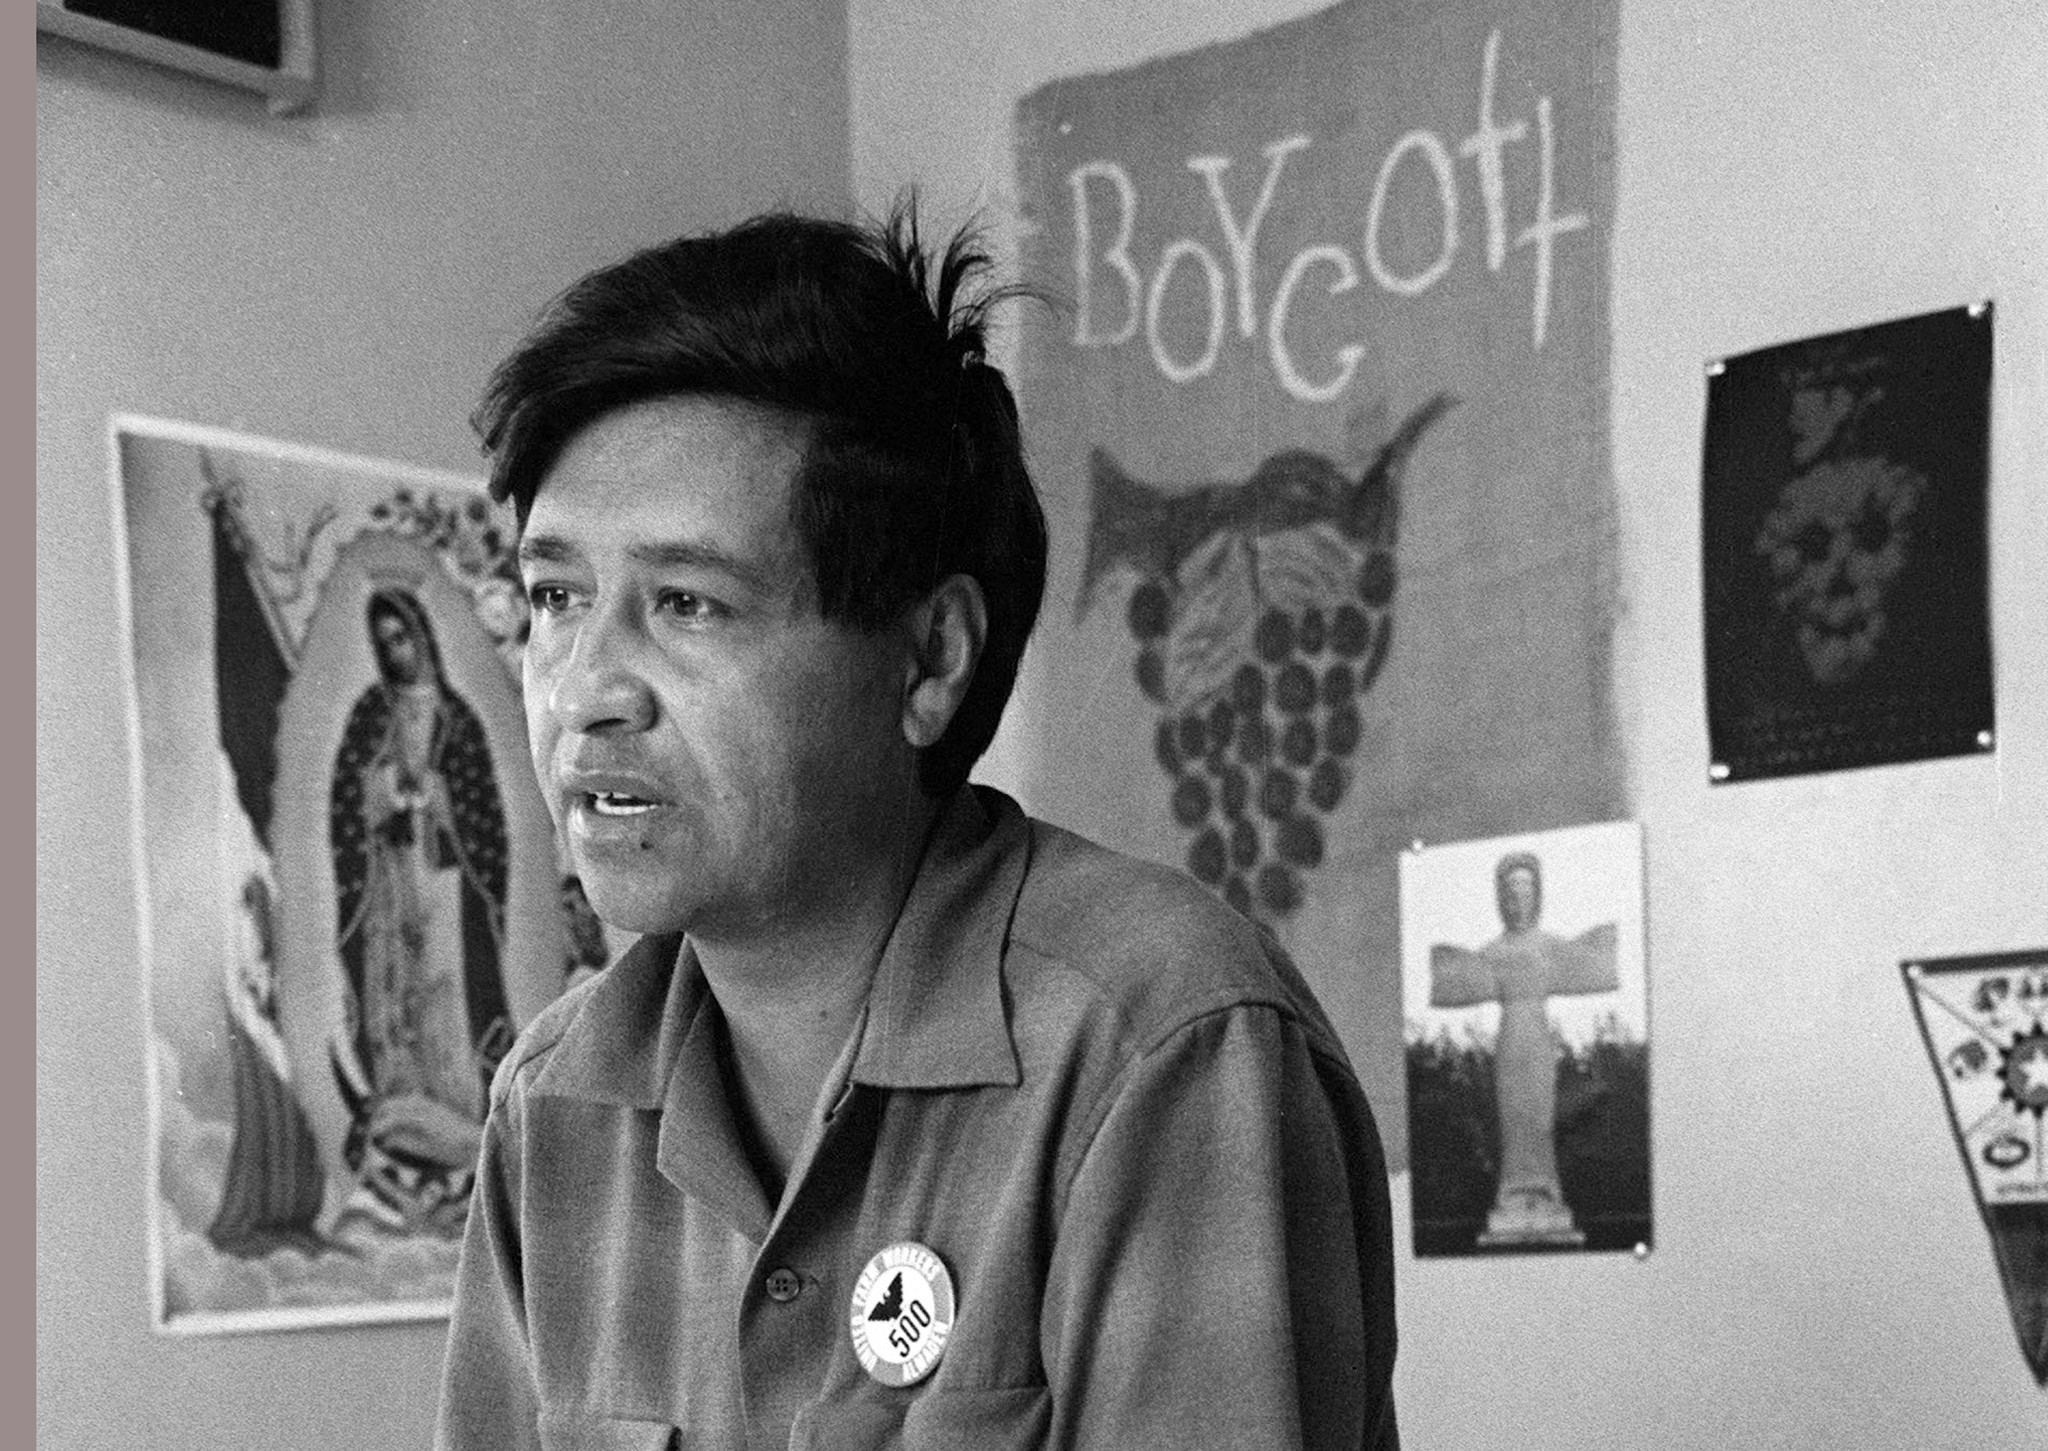 Cesar Chavez: 50 Years Ago, Cesar Chavez Led A Crusade To Unite And